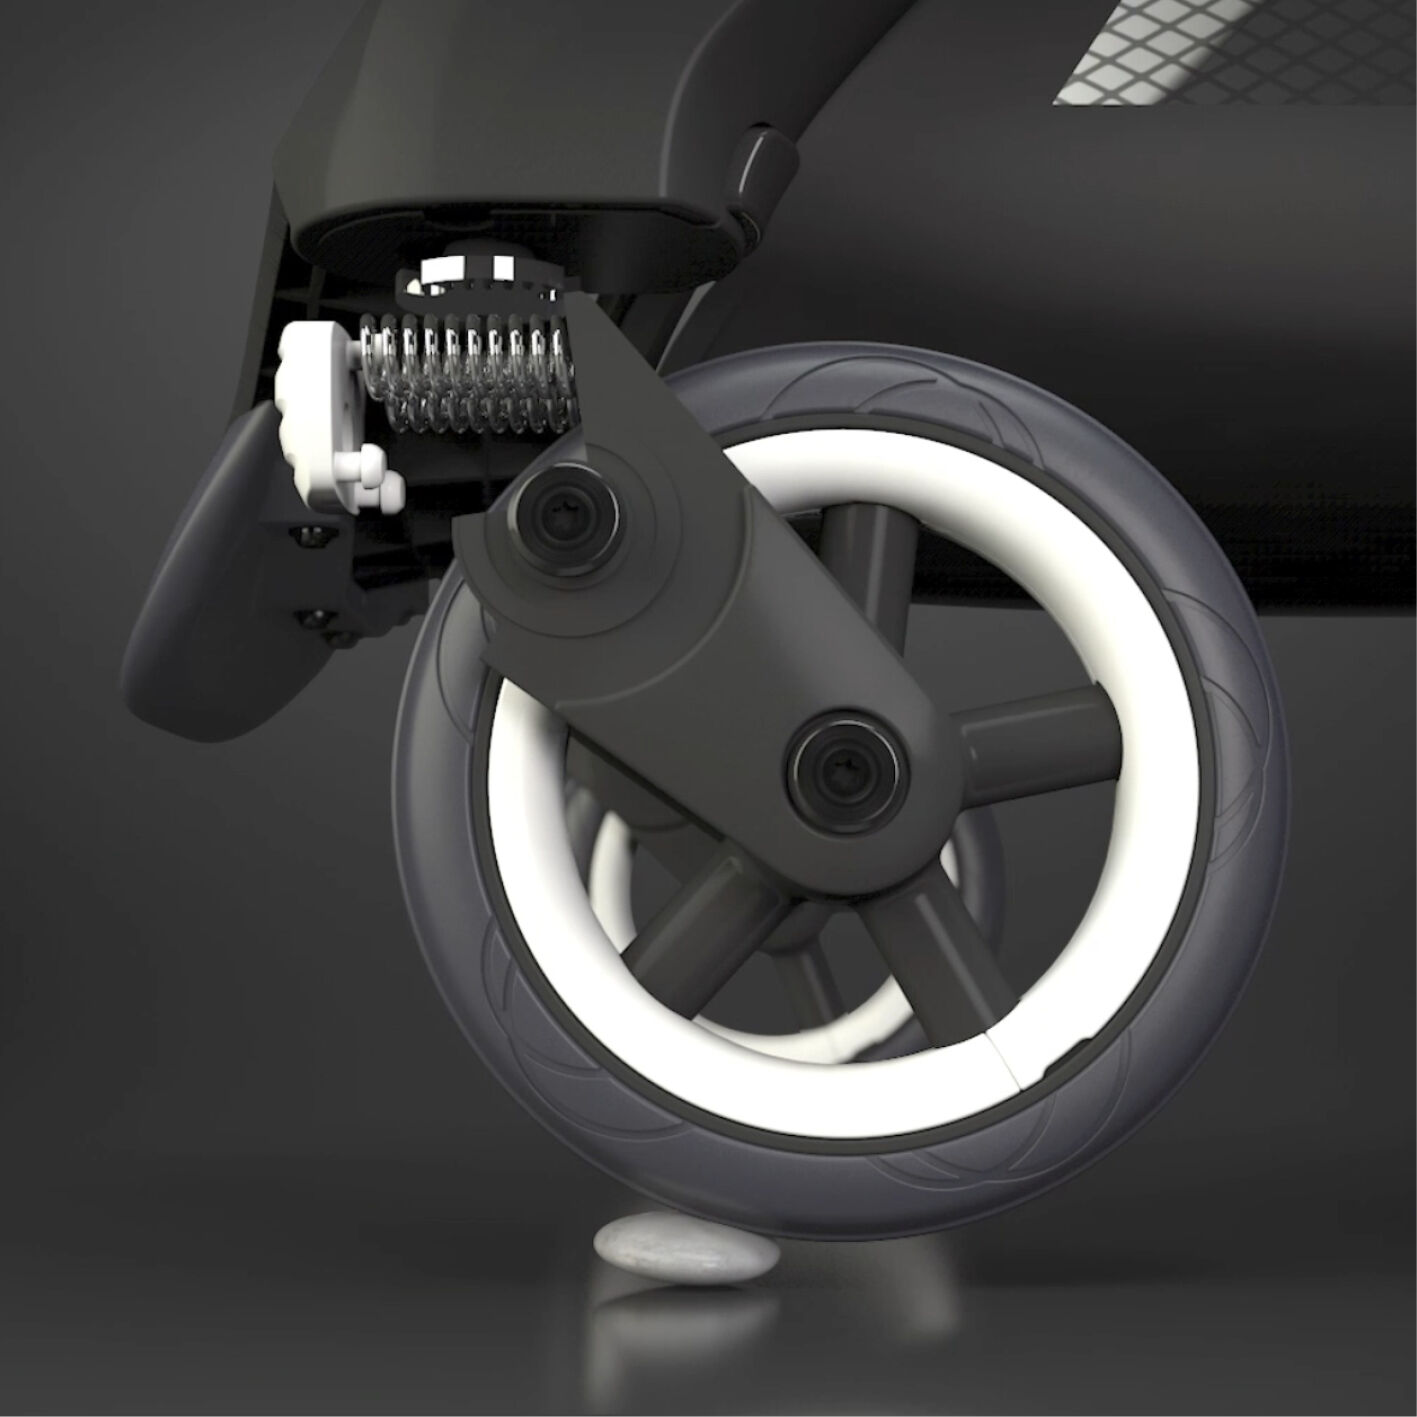 Bugaboo Ant nimble wheels with advanced suspension